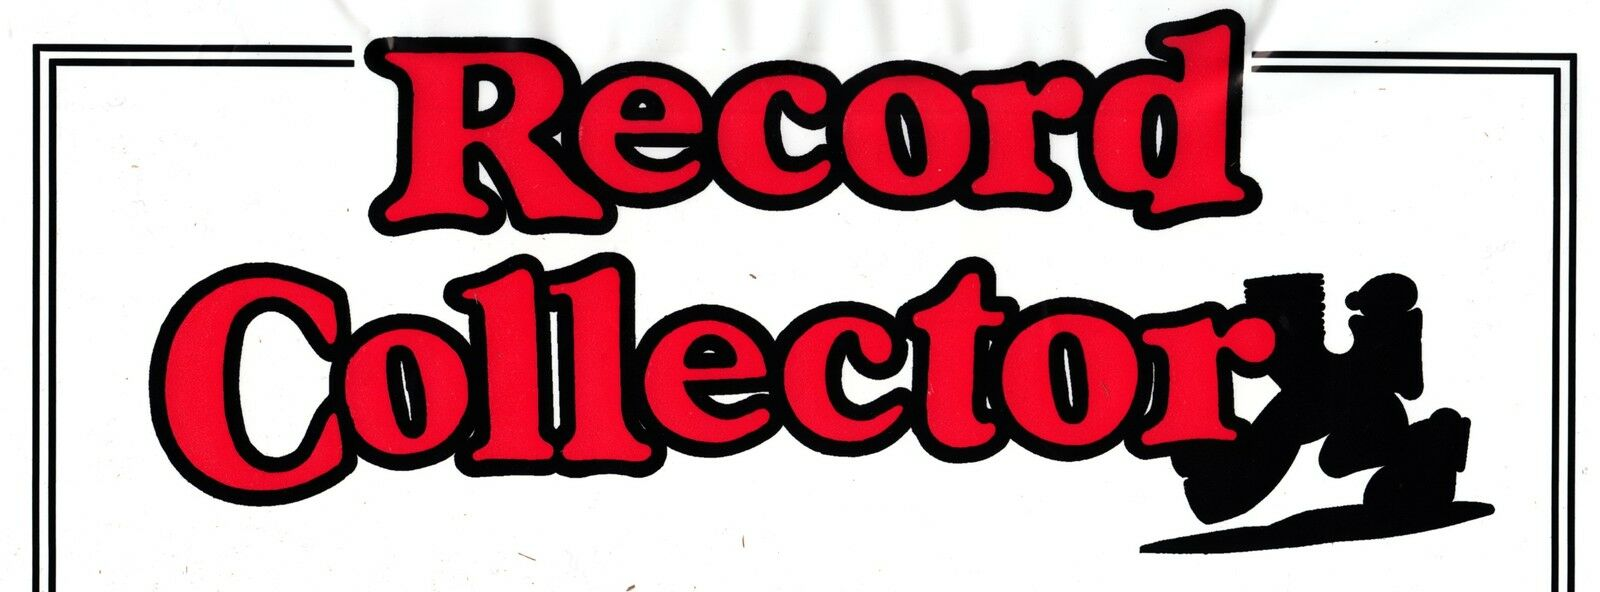 Record Collector